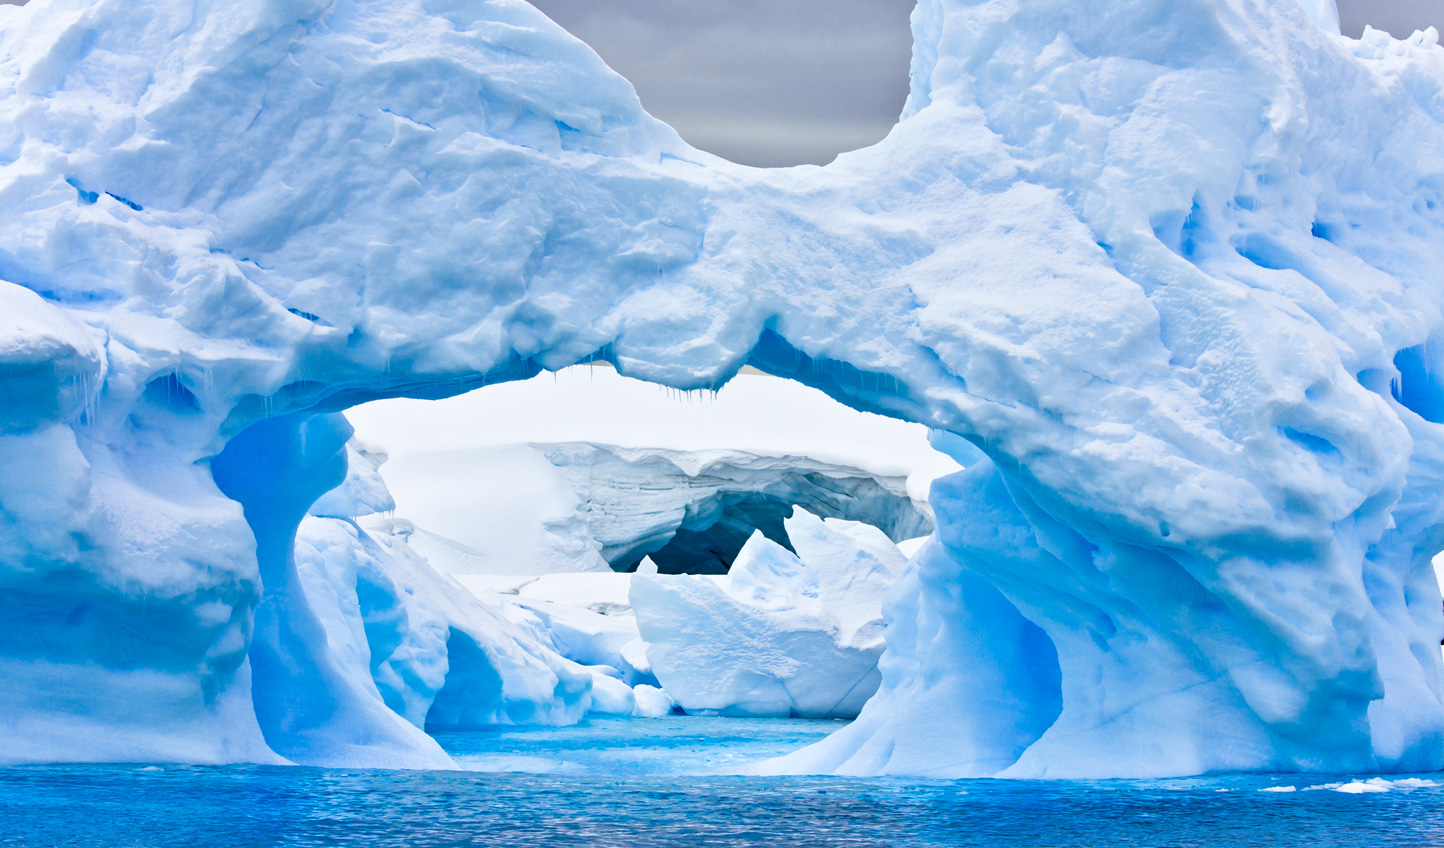 Ever sailed beneath an ice arch? There's a first for everything